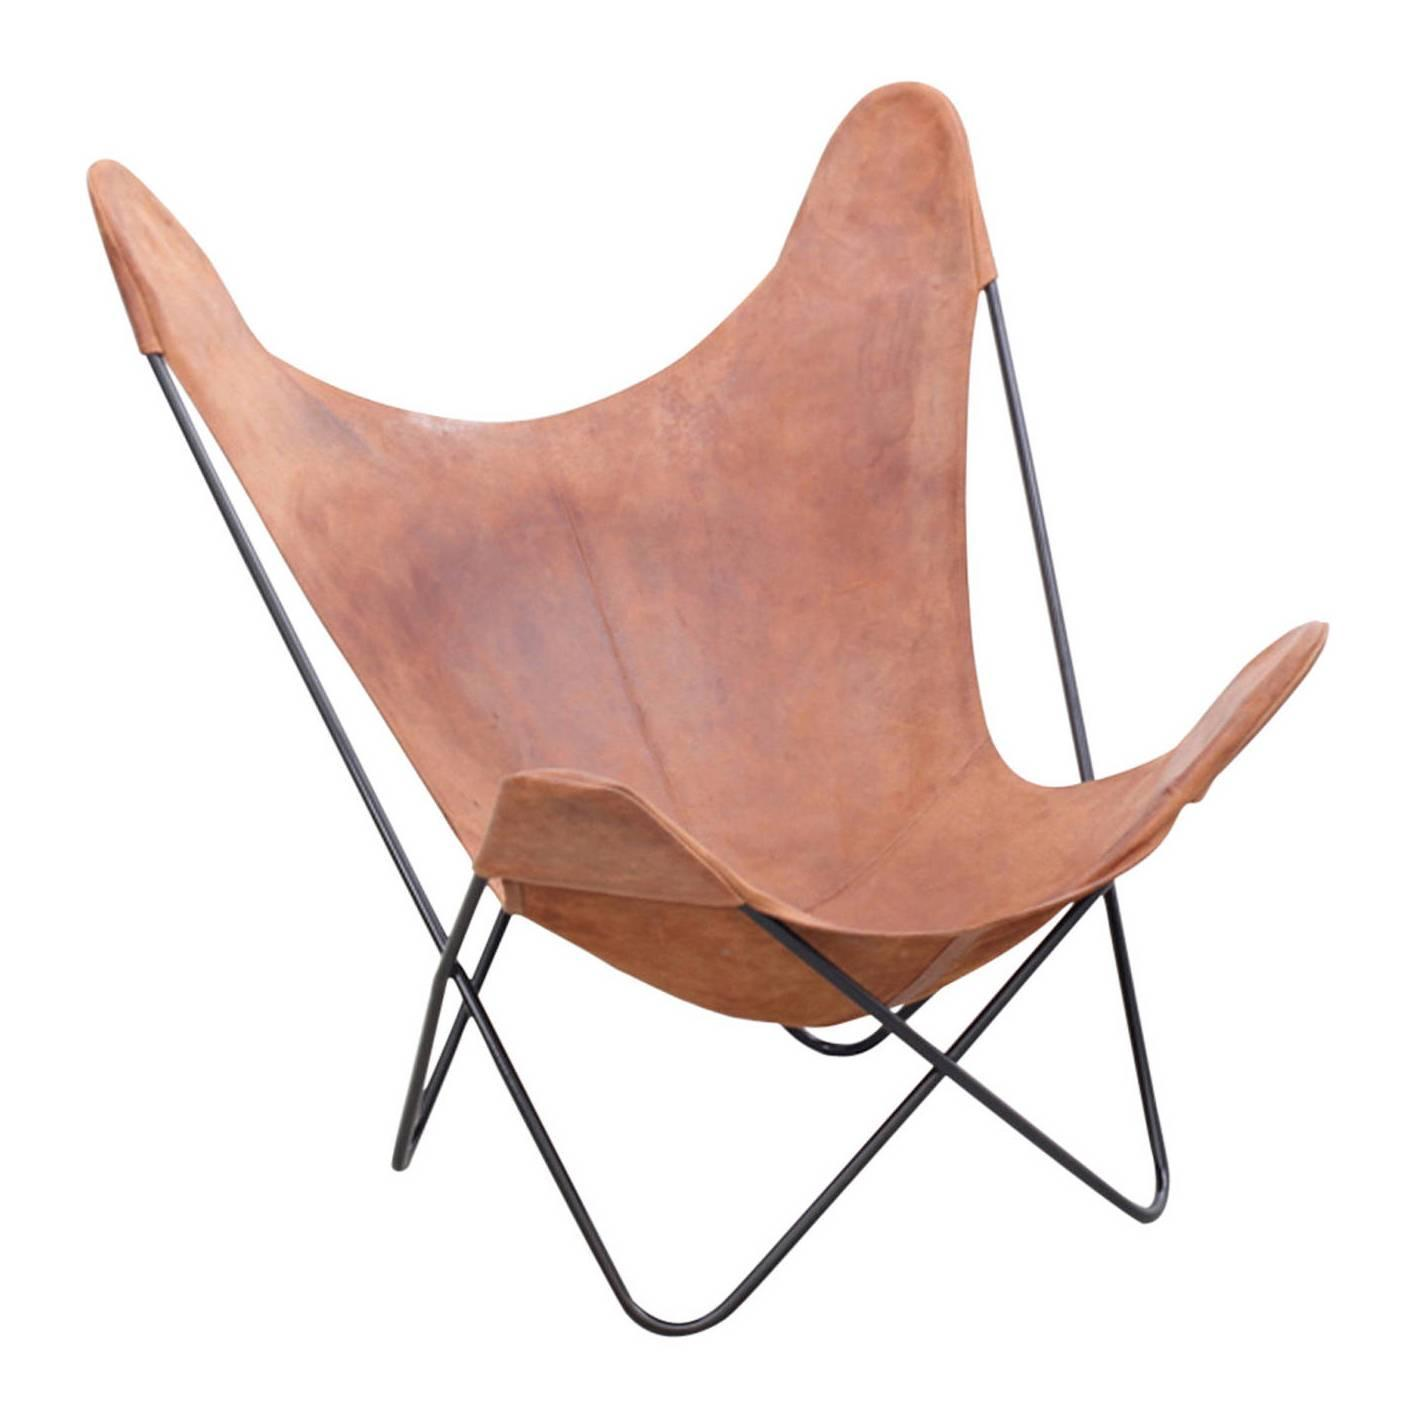 butterfly lounge chair wedding covers middlesbrough vintage hardoy in original leather at 1stdibs